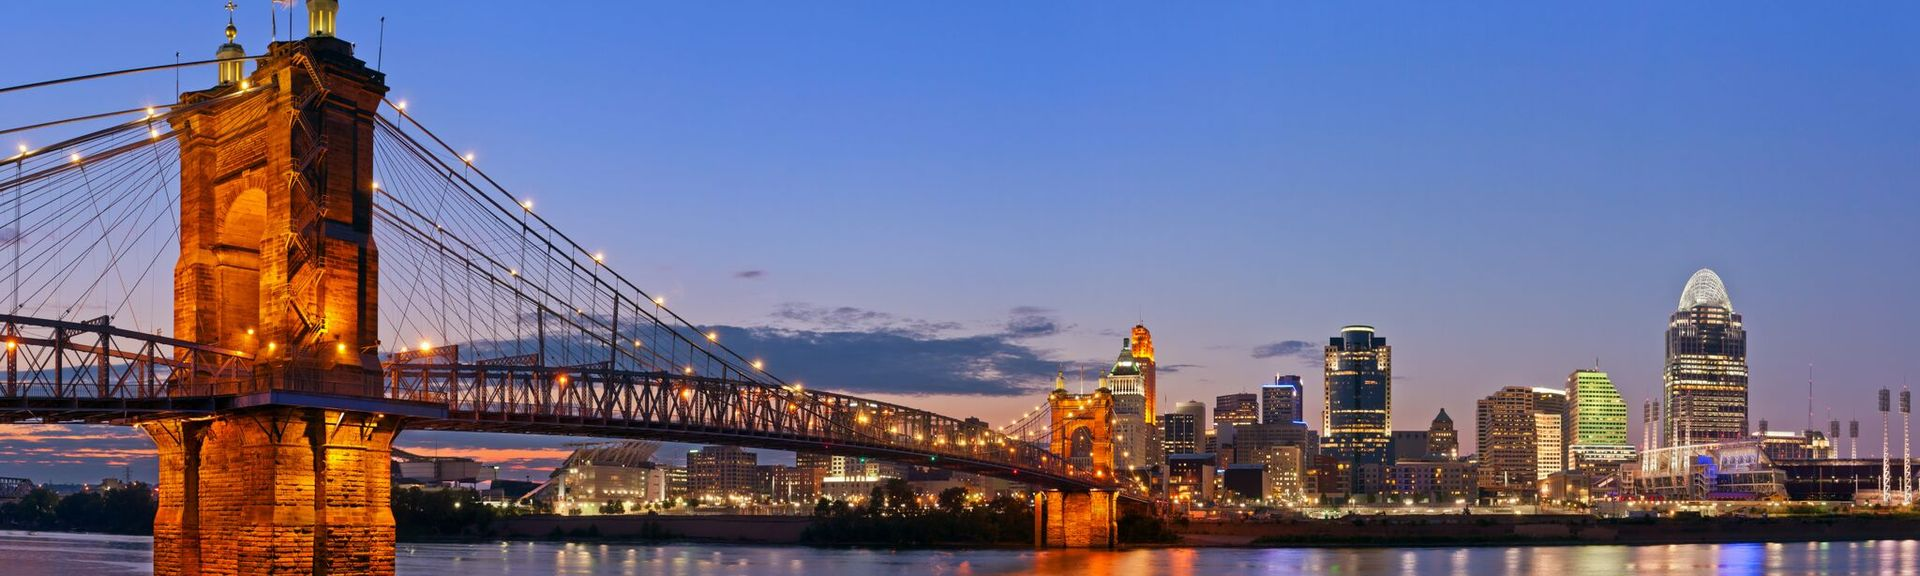 Cincinnati, Ohio, United States of America